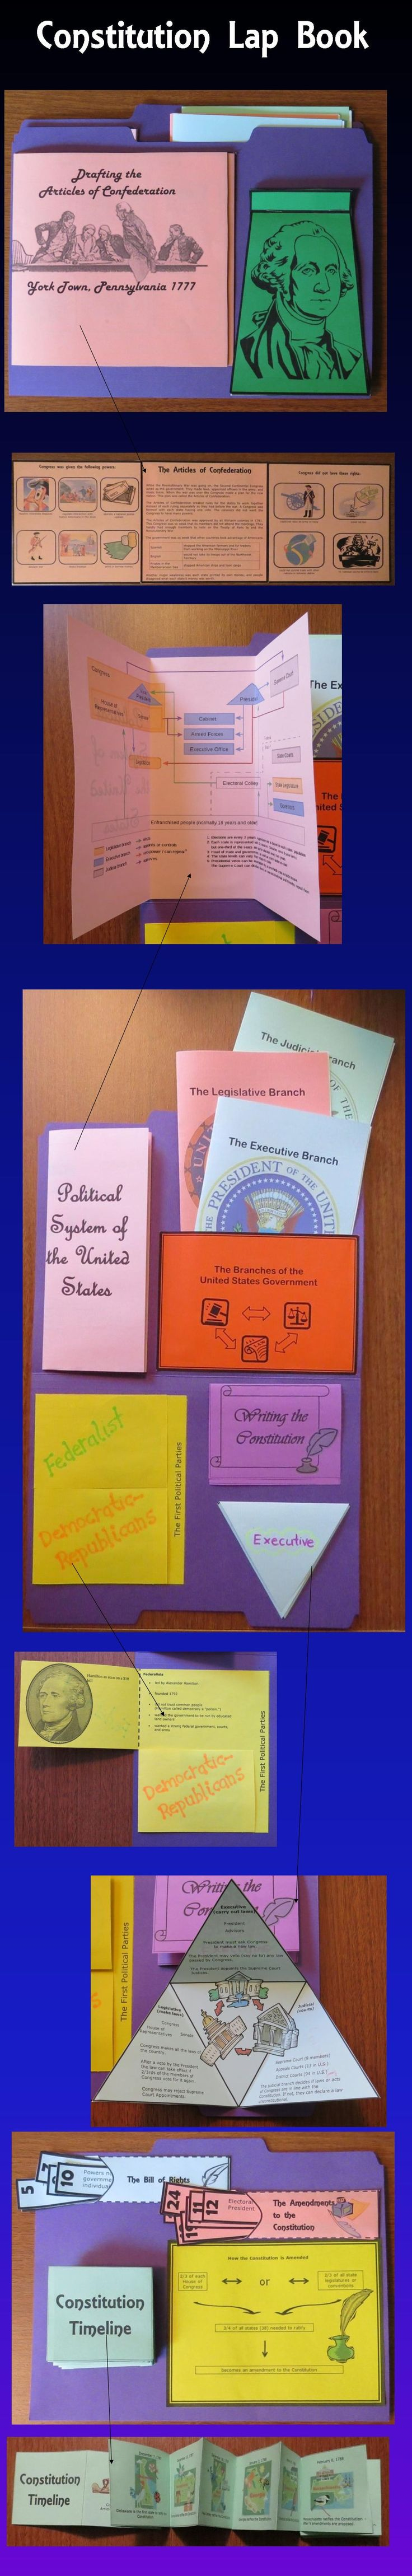 Constitution Contains Interactiveanizers Which May Be Glued Onto A File  Folder To Form A Lap Book